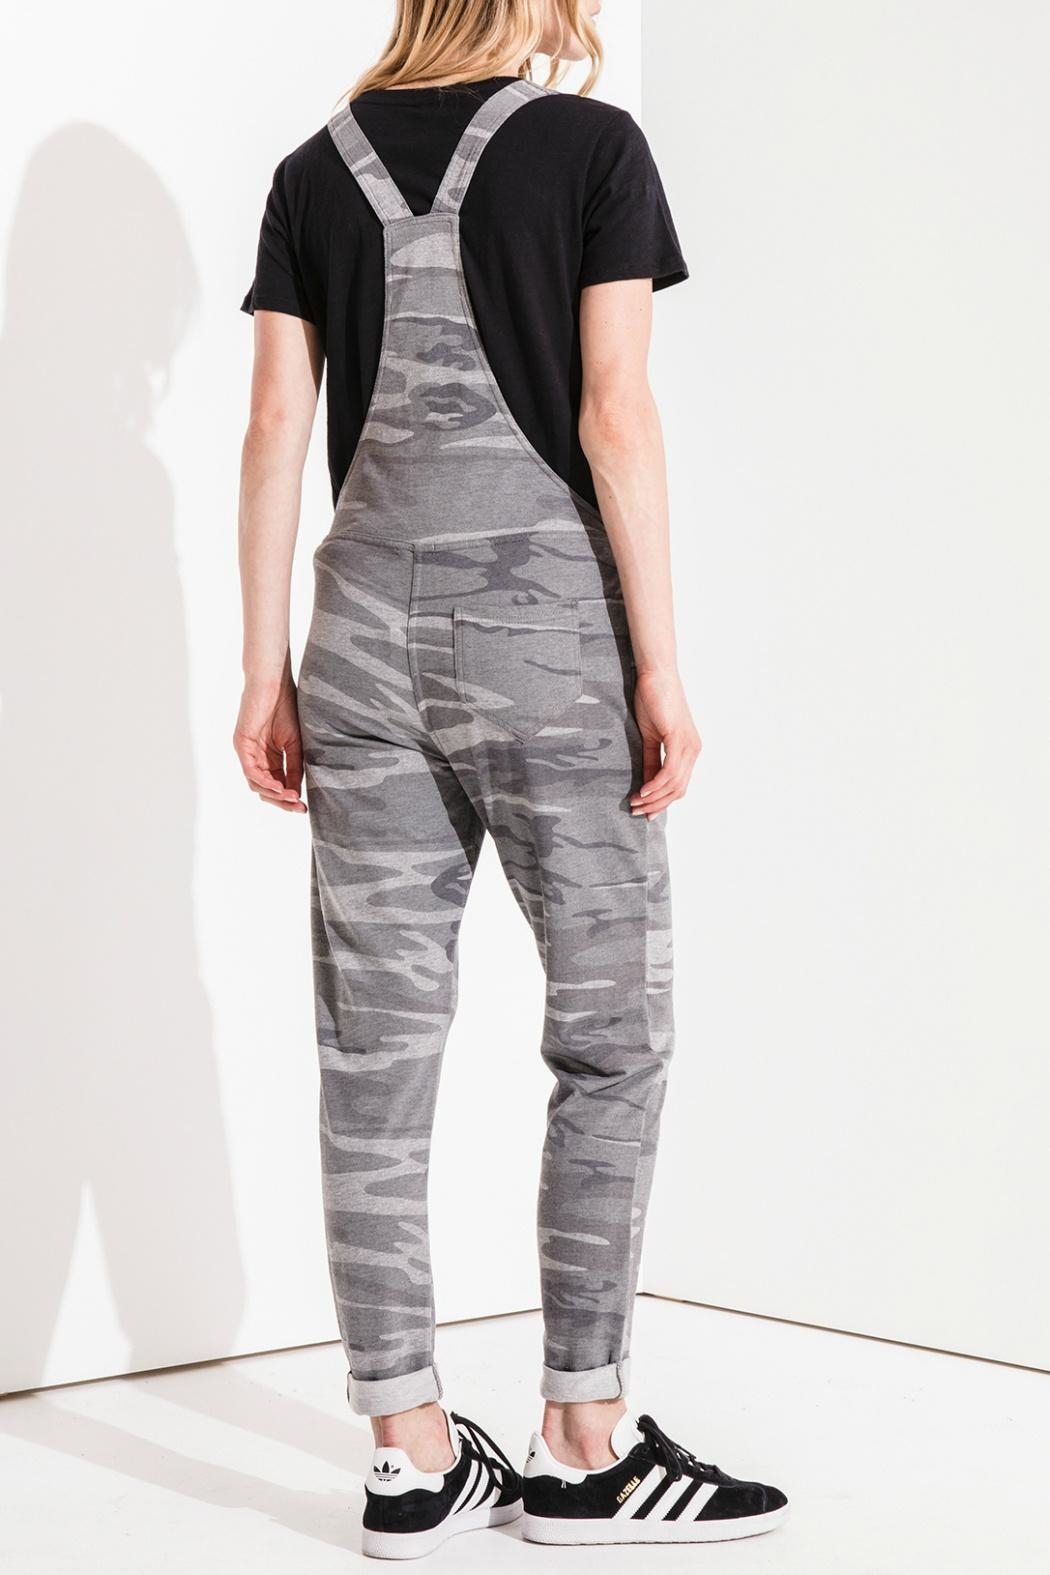 z supply Grey Camo Overalls - Front Full Image